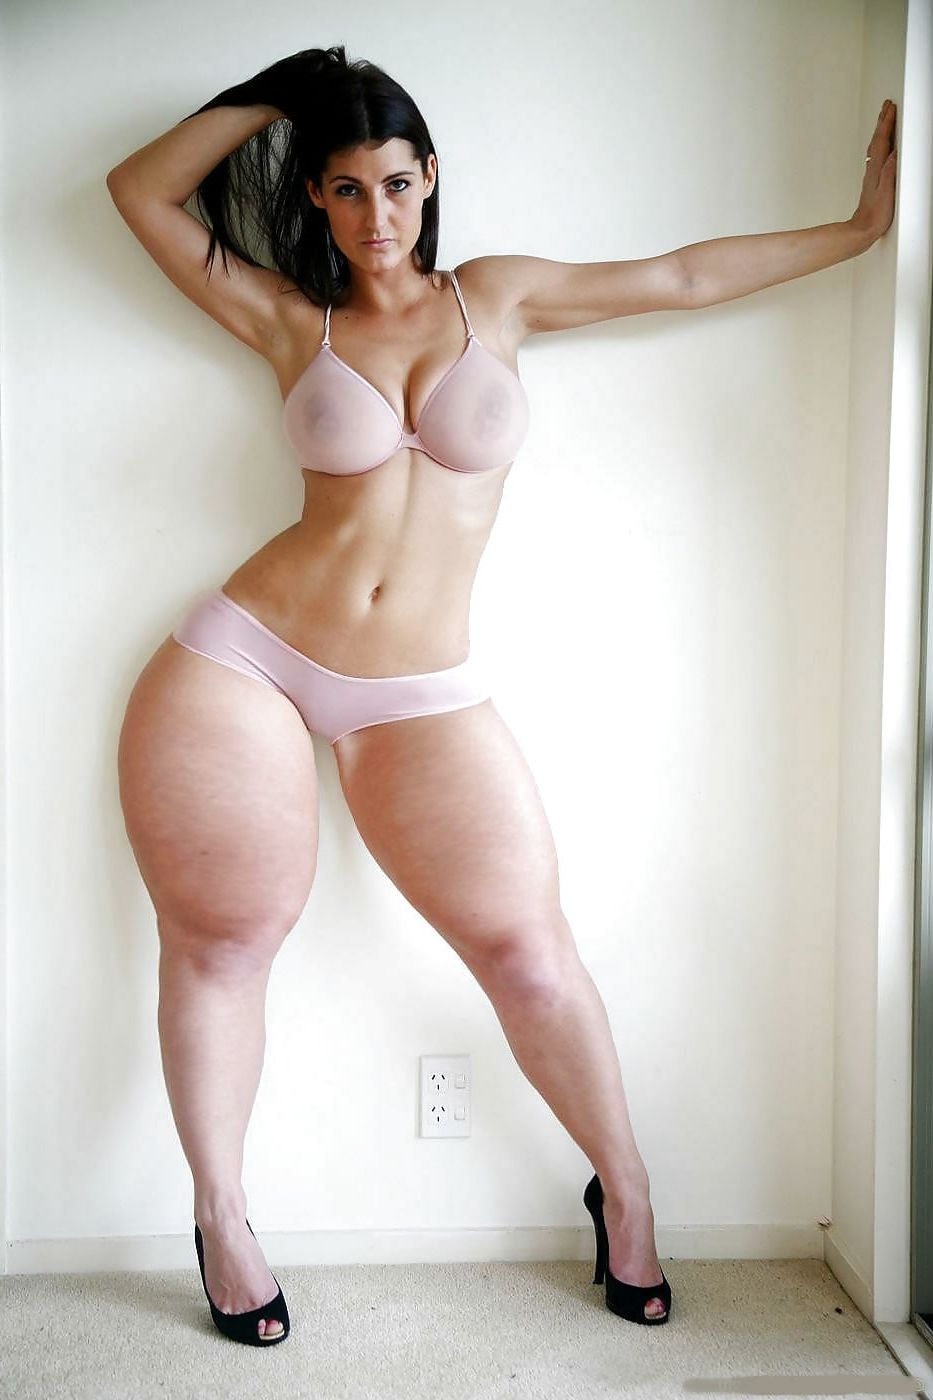 Thick sexy naked ass thighs